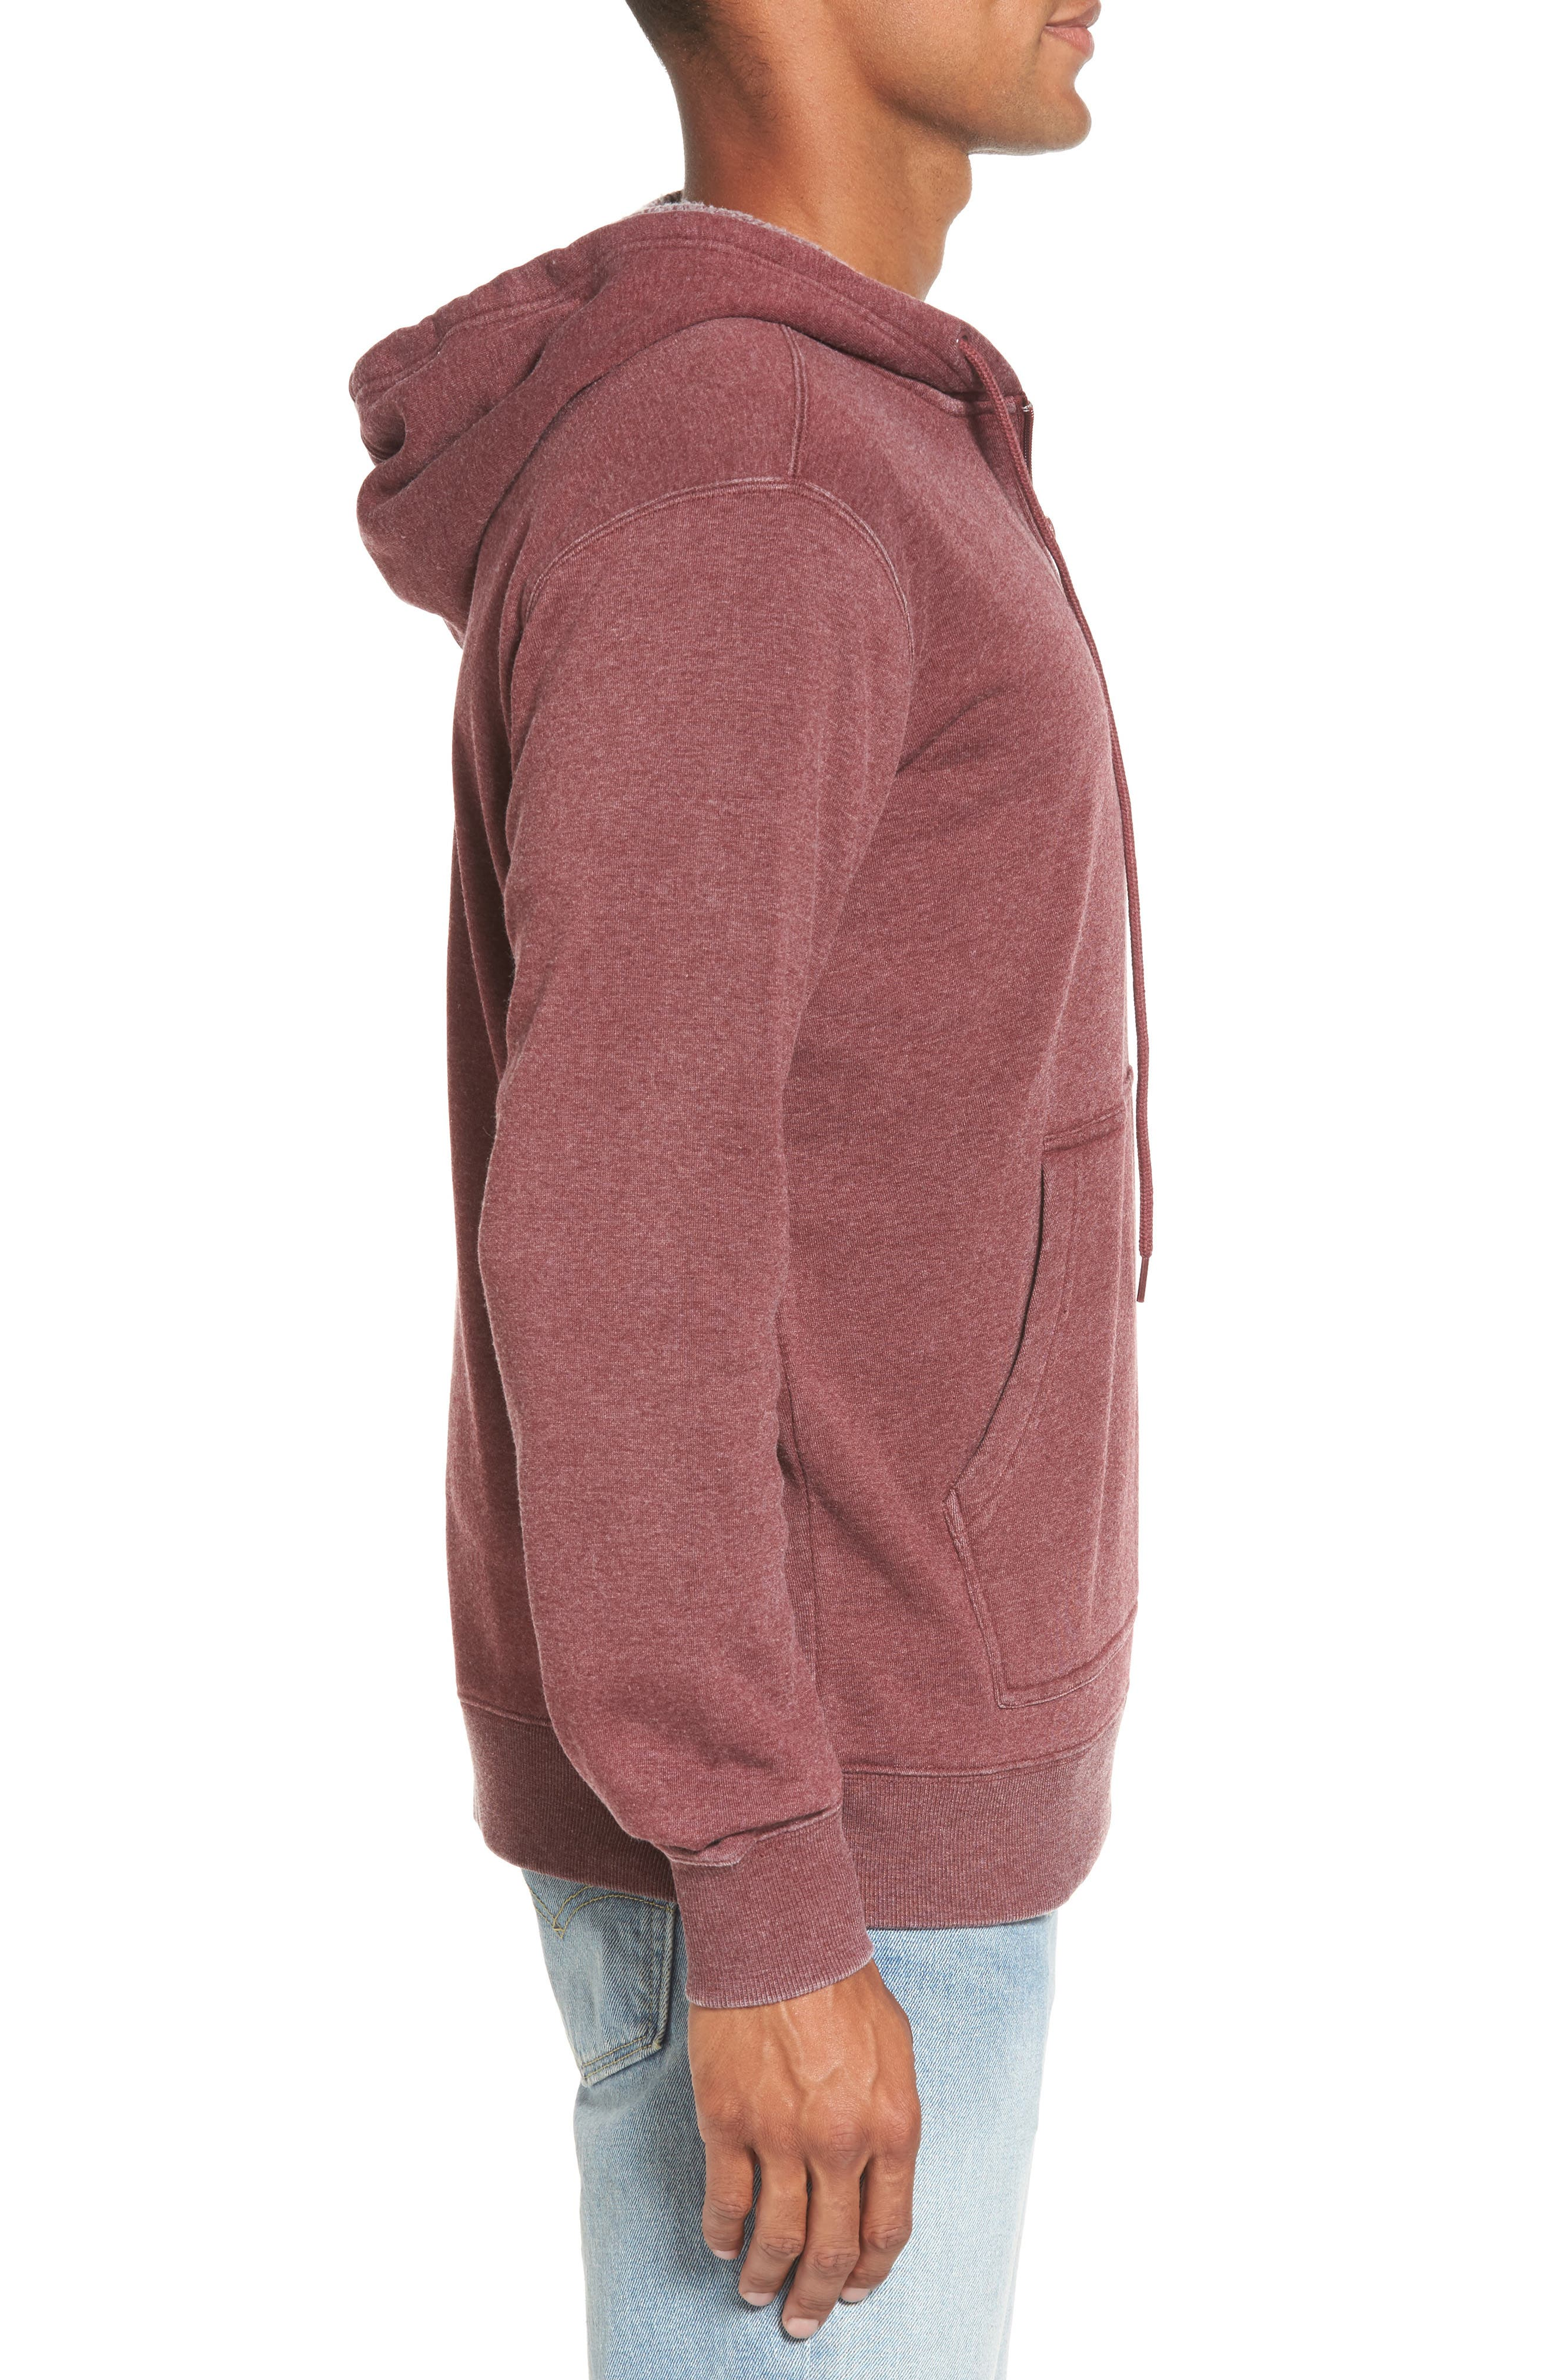 Sunwash Hoodie,                             Alternate thumbnail 3, color,                             Tawny Port